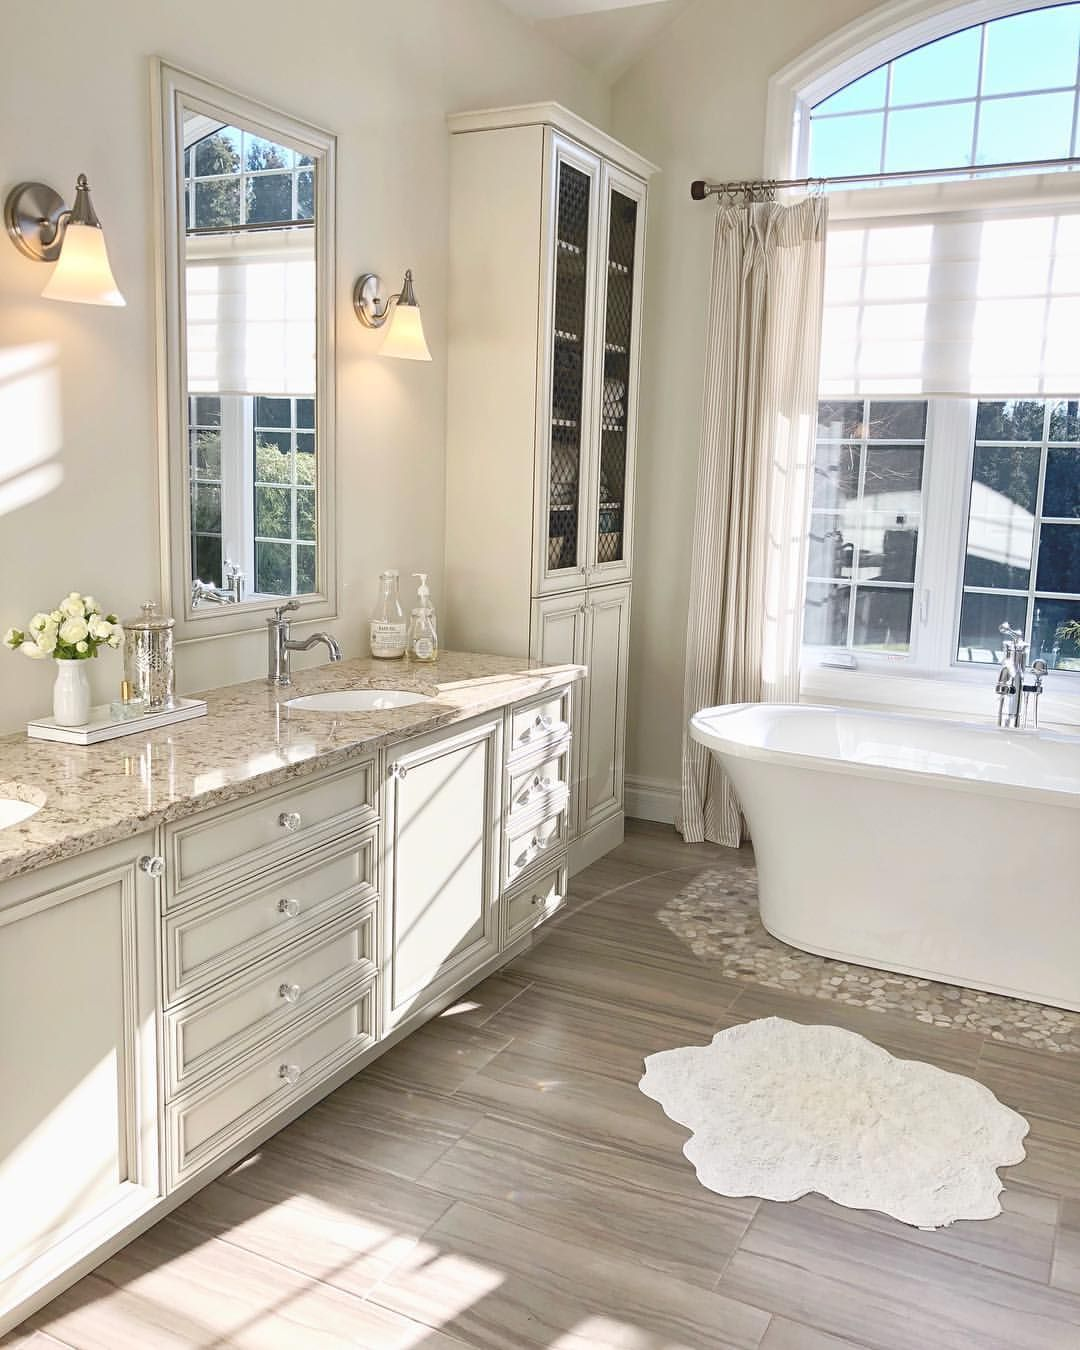 50 Bathroom Vanity Ideas Ingeniously Prettify You And: Pin By Ellen Colleluori On Ideas For The House